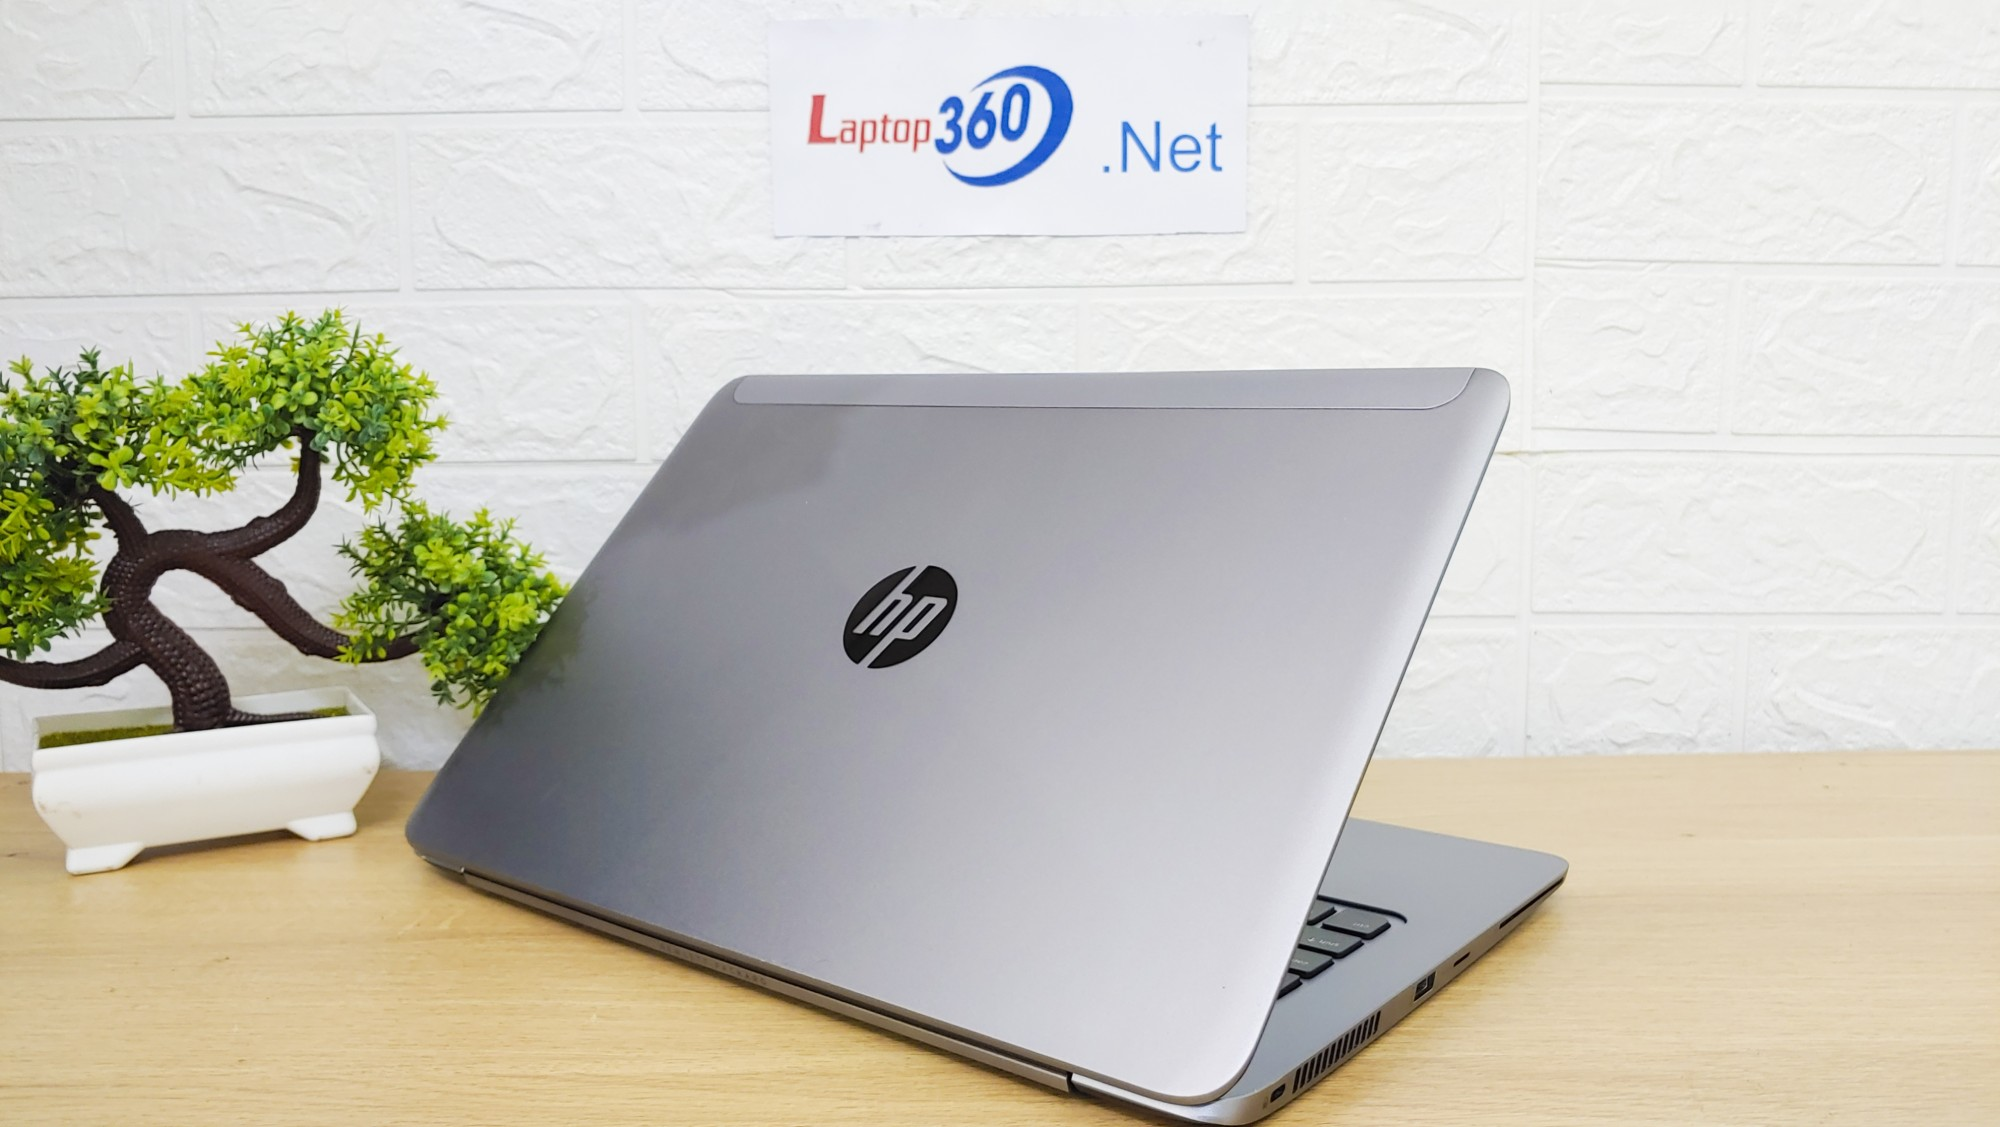 HP Elitebook 1040 G2